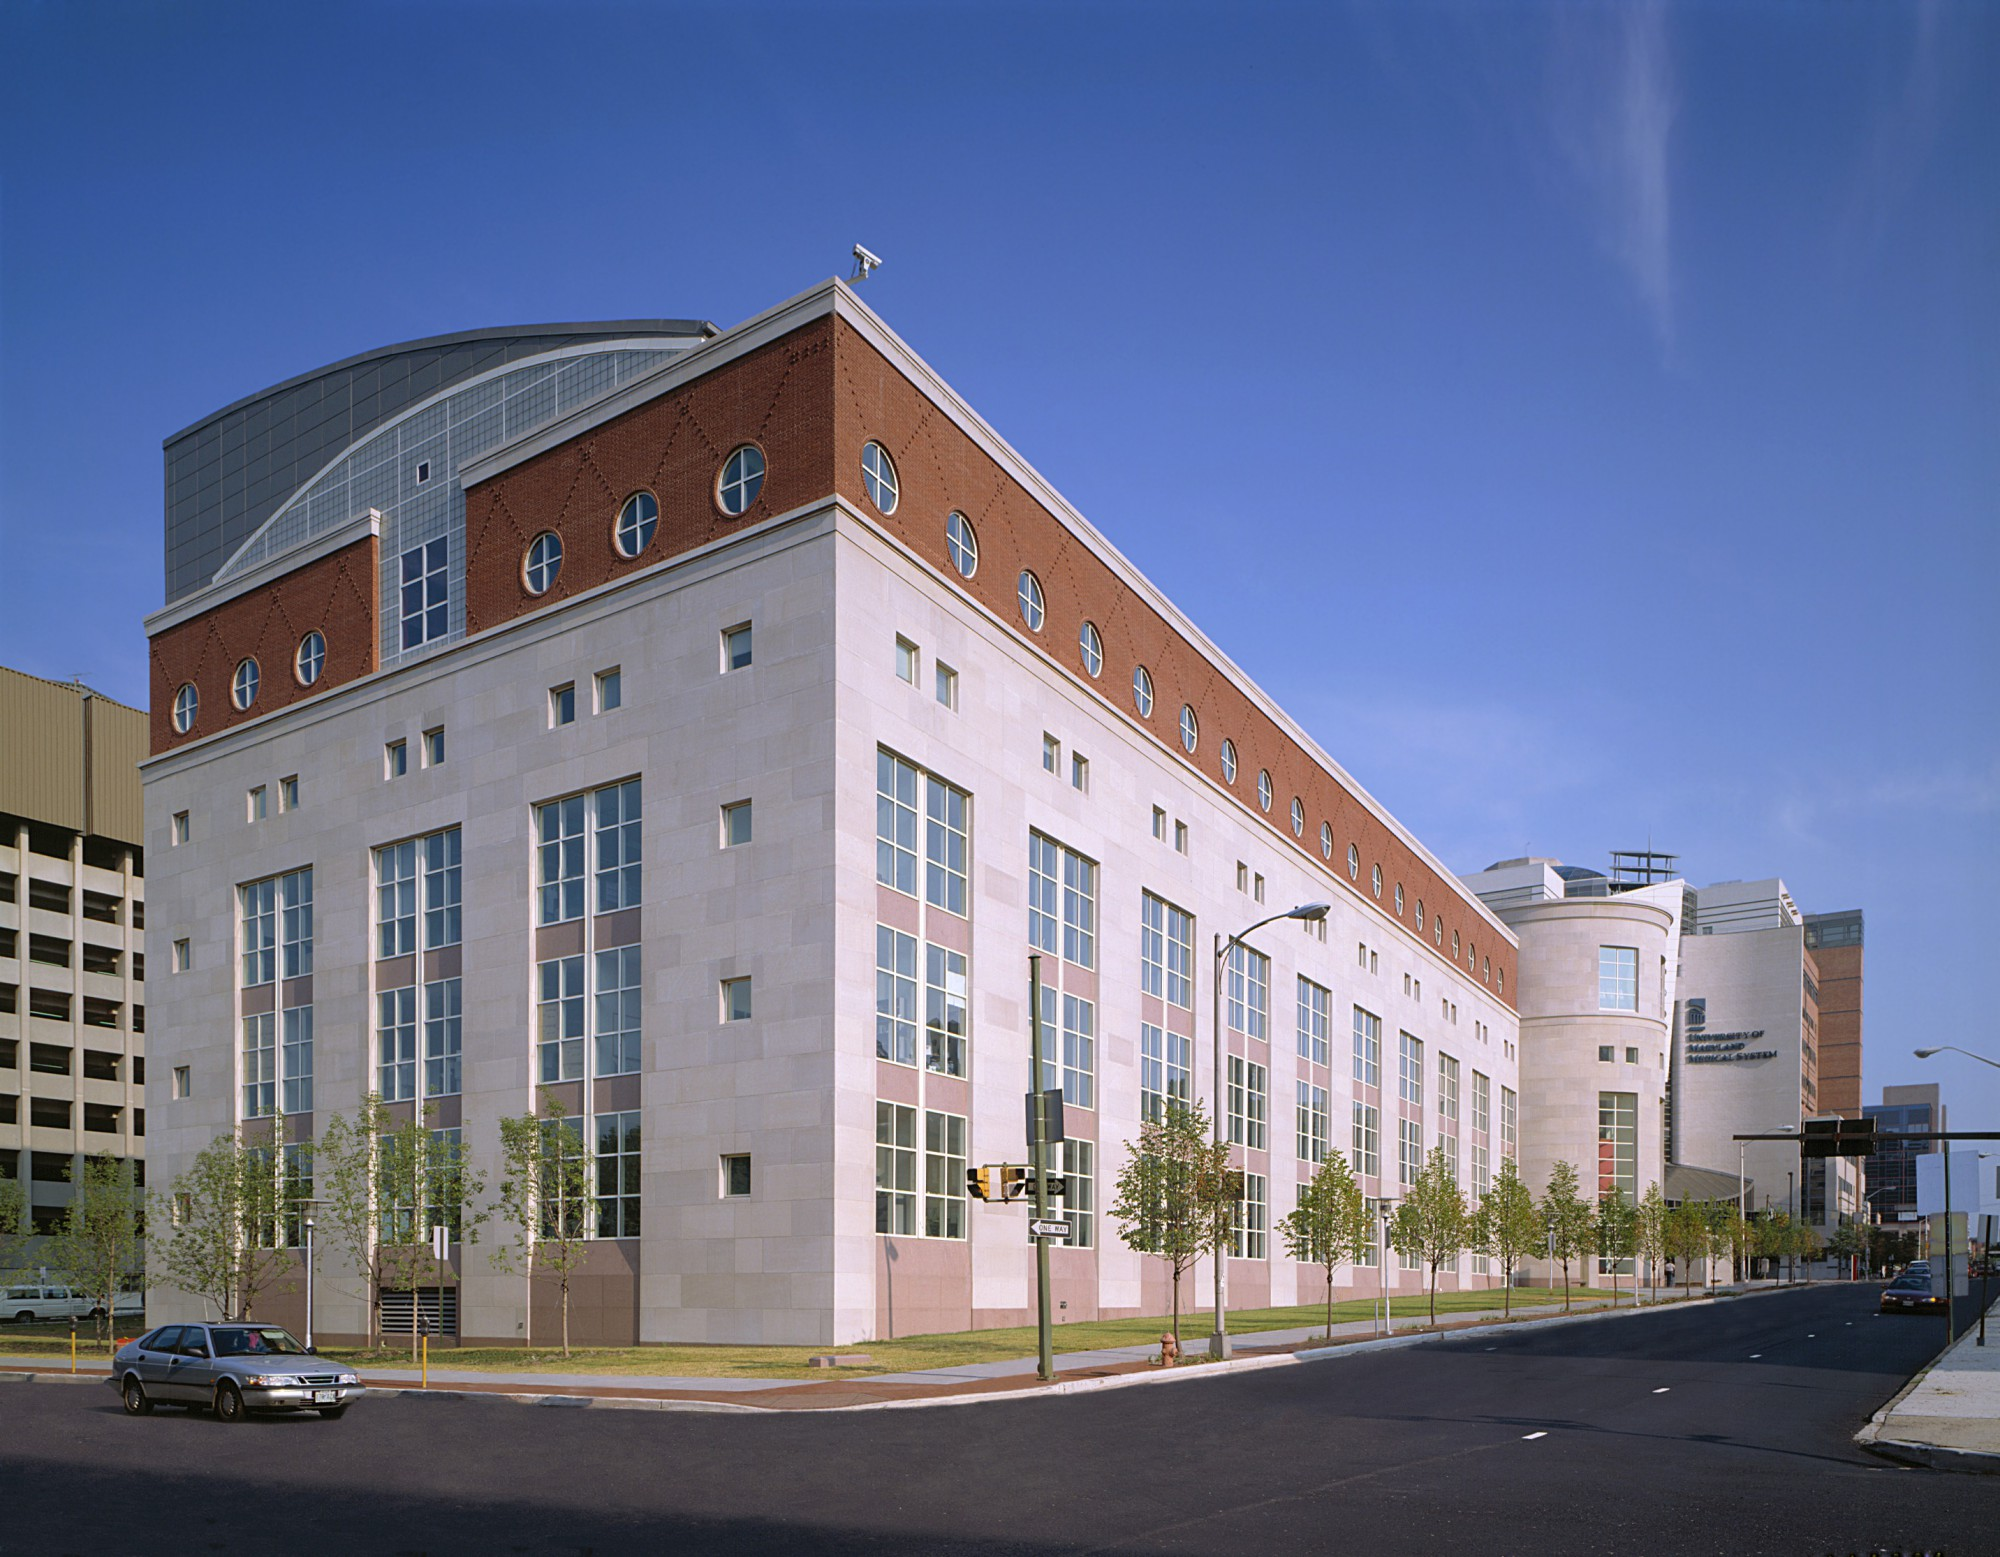 Health Sciences and Human Services Library - University of Maryland